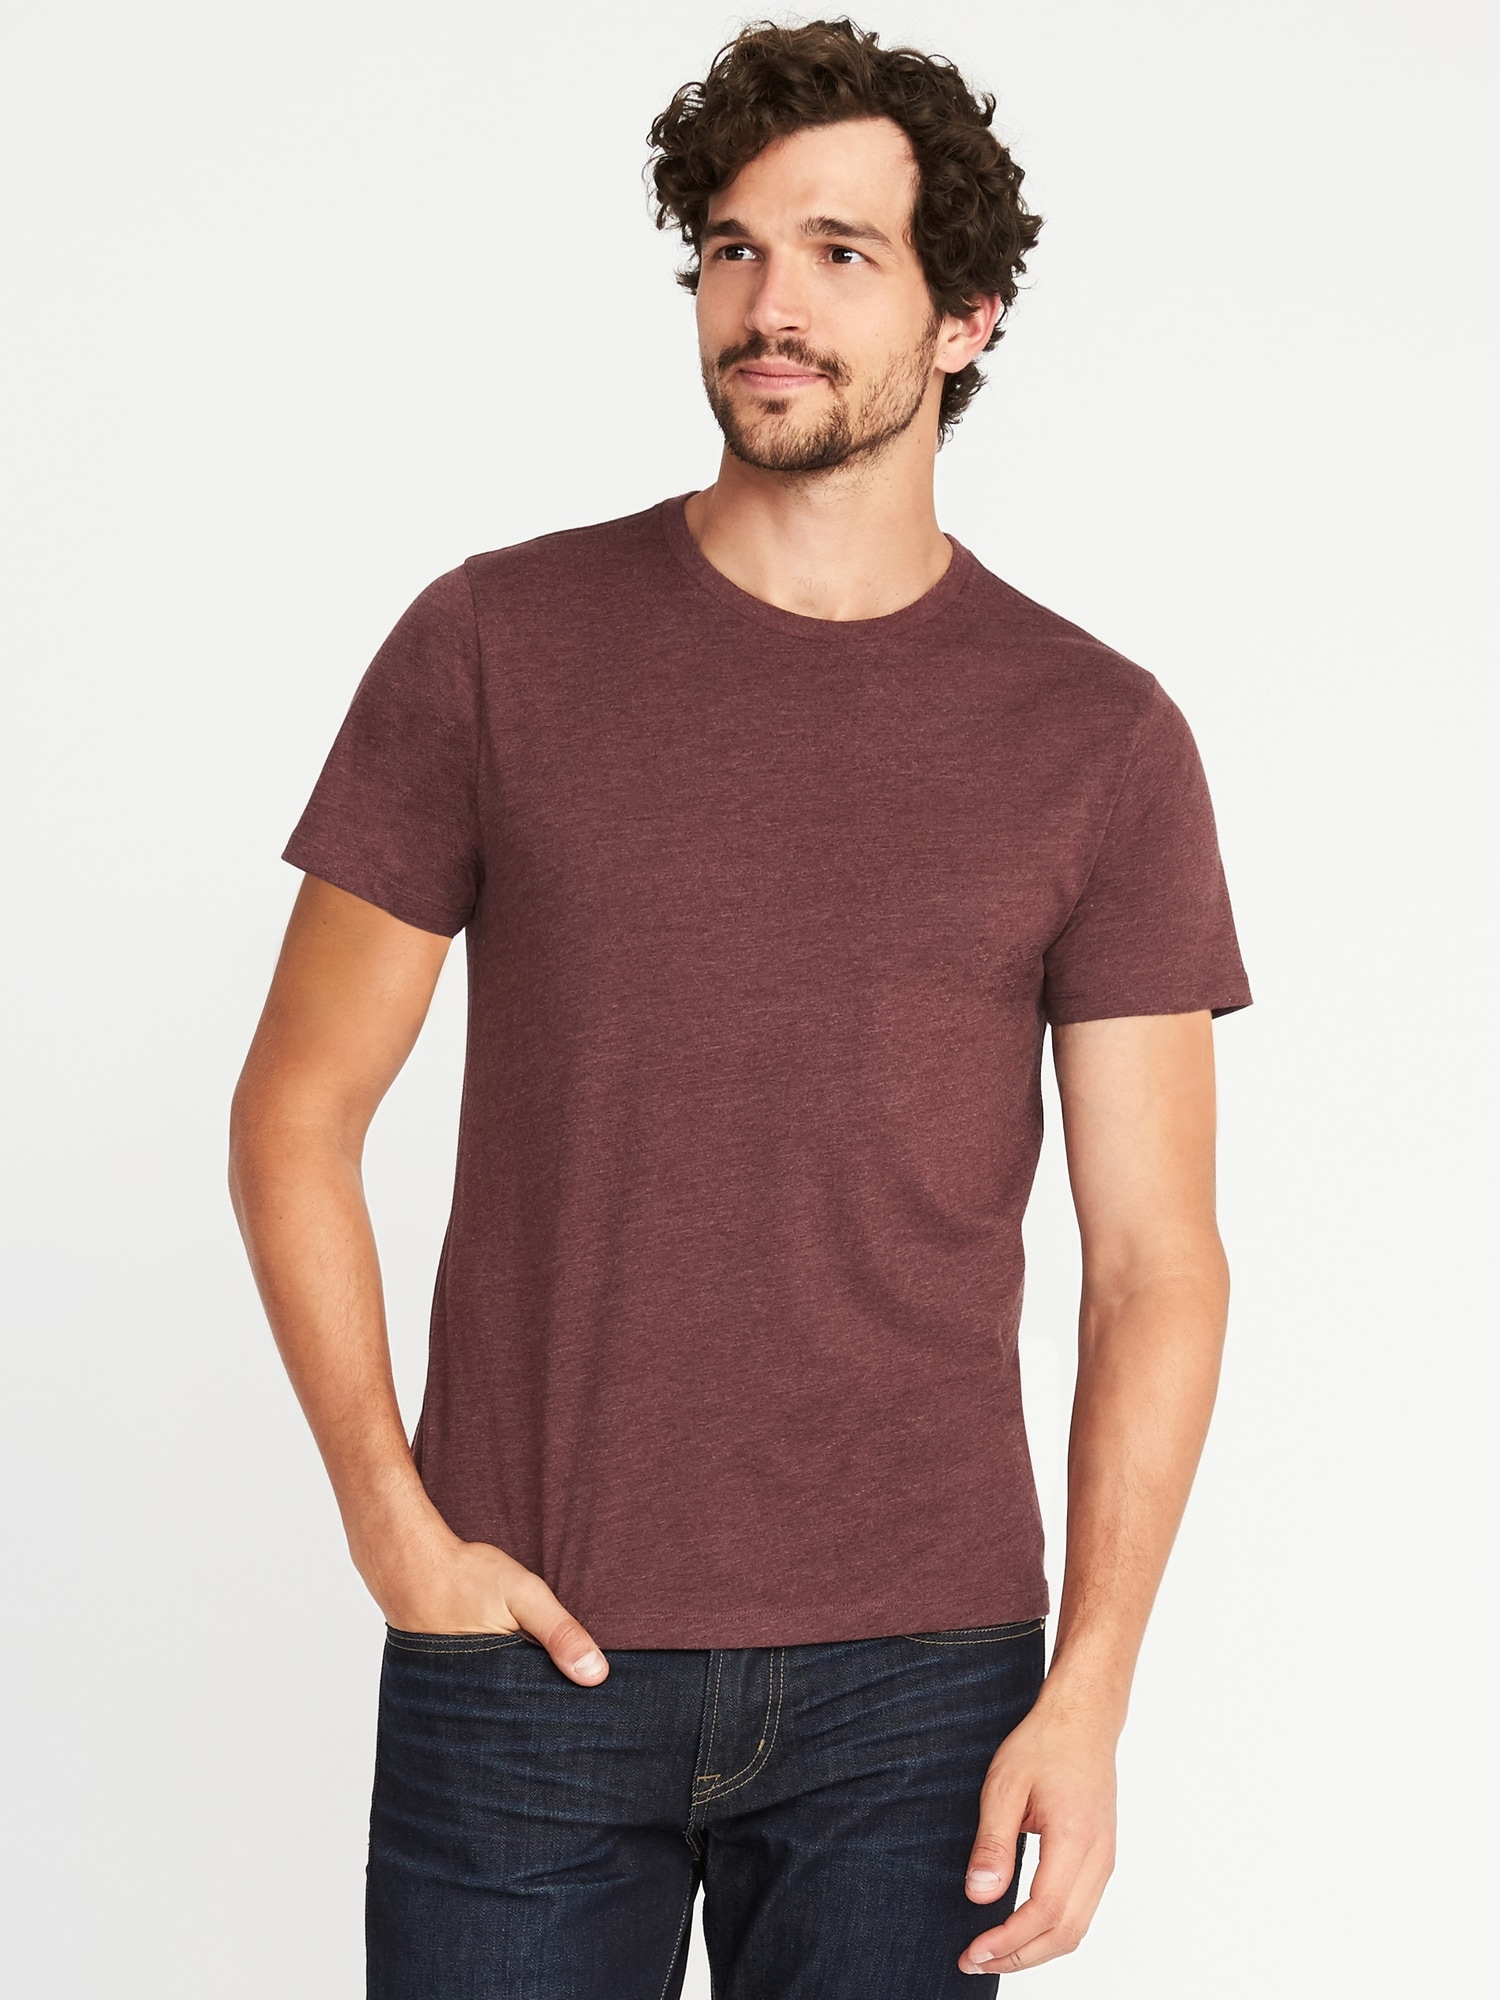 Soft Washed Crew Neck Tee For Men Old Navy Banana Tumblr